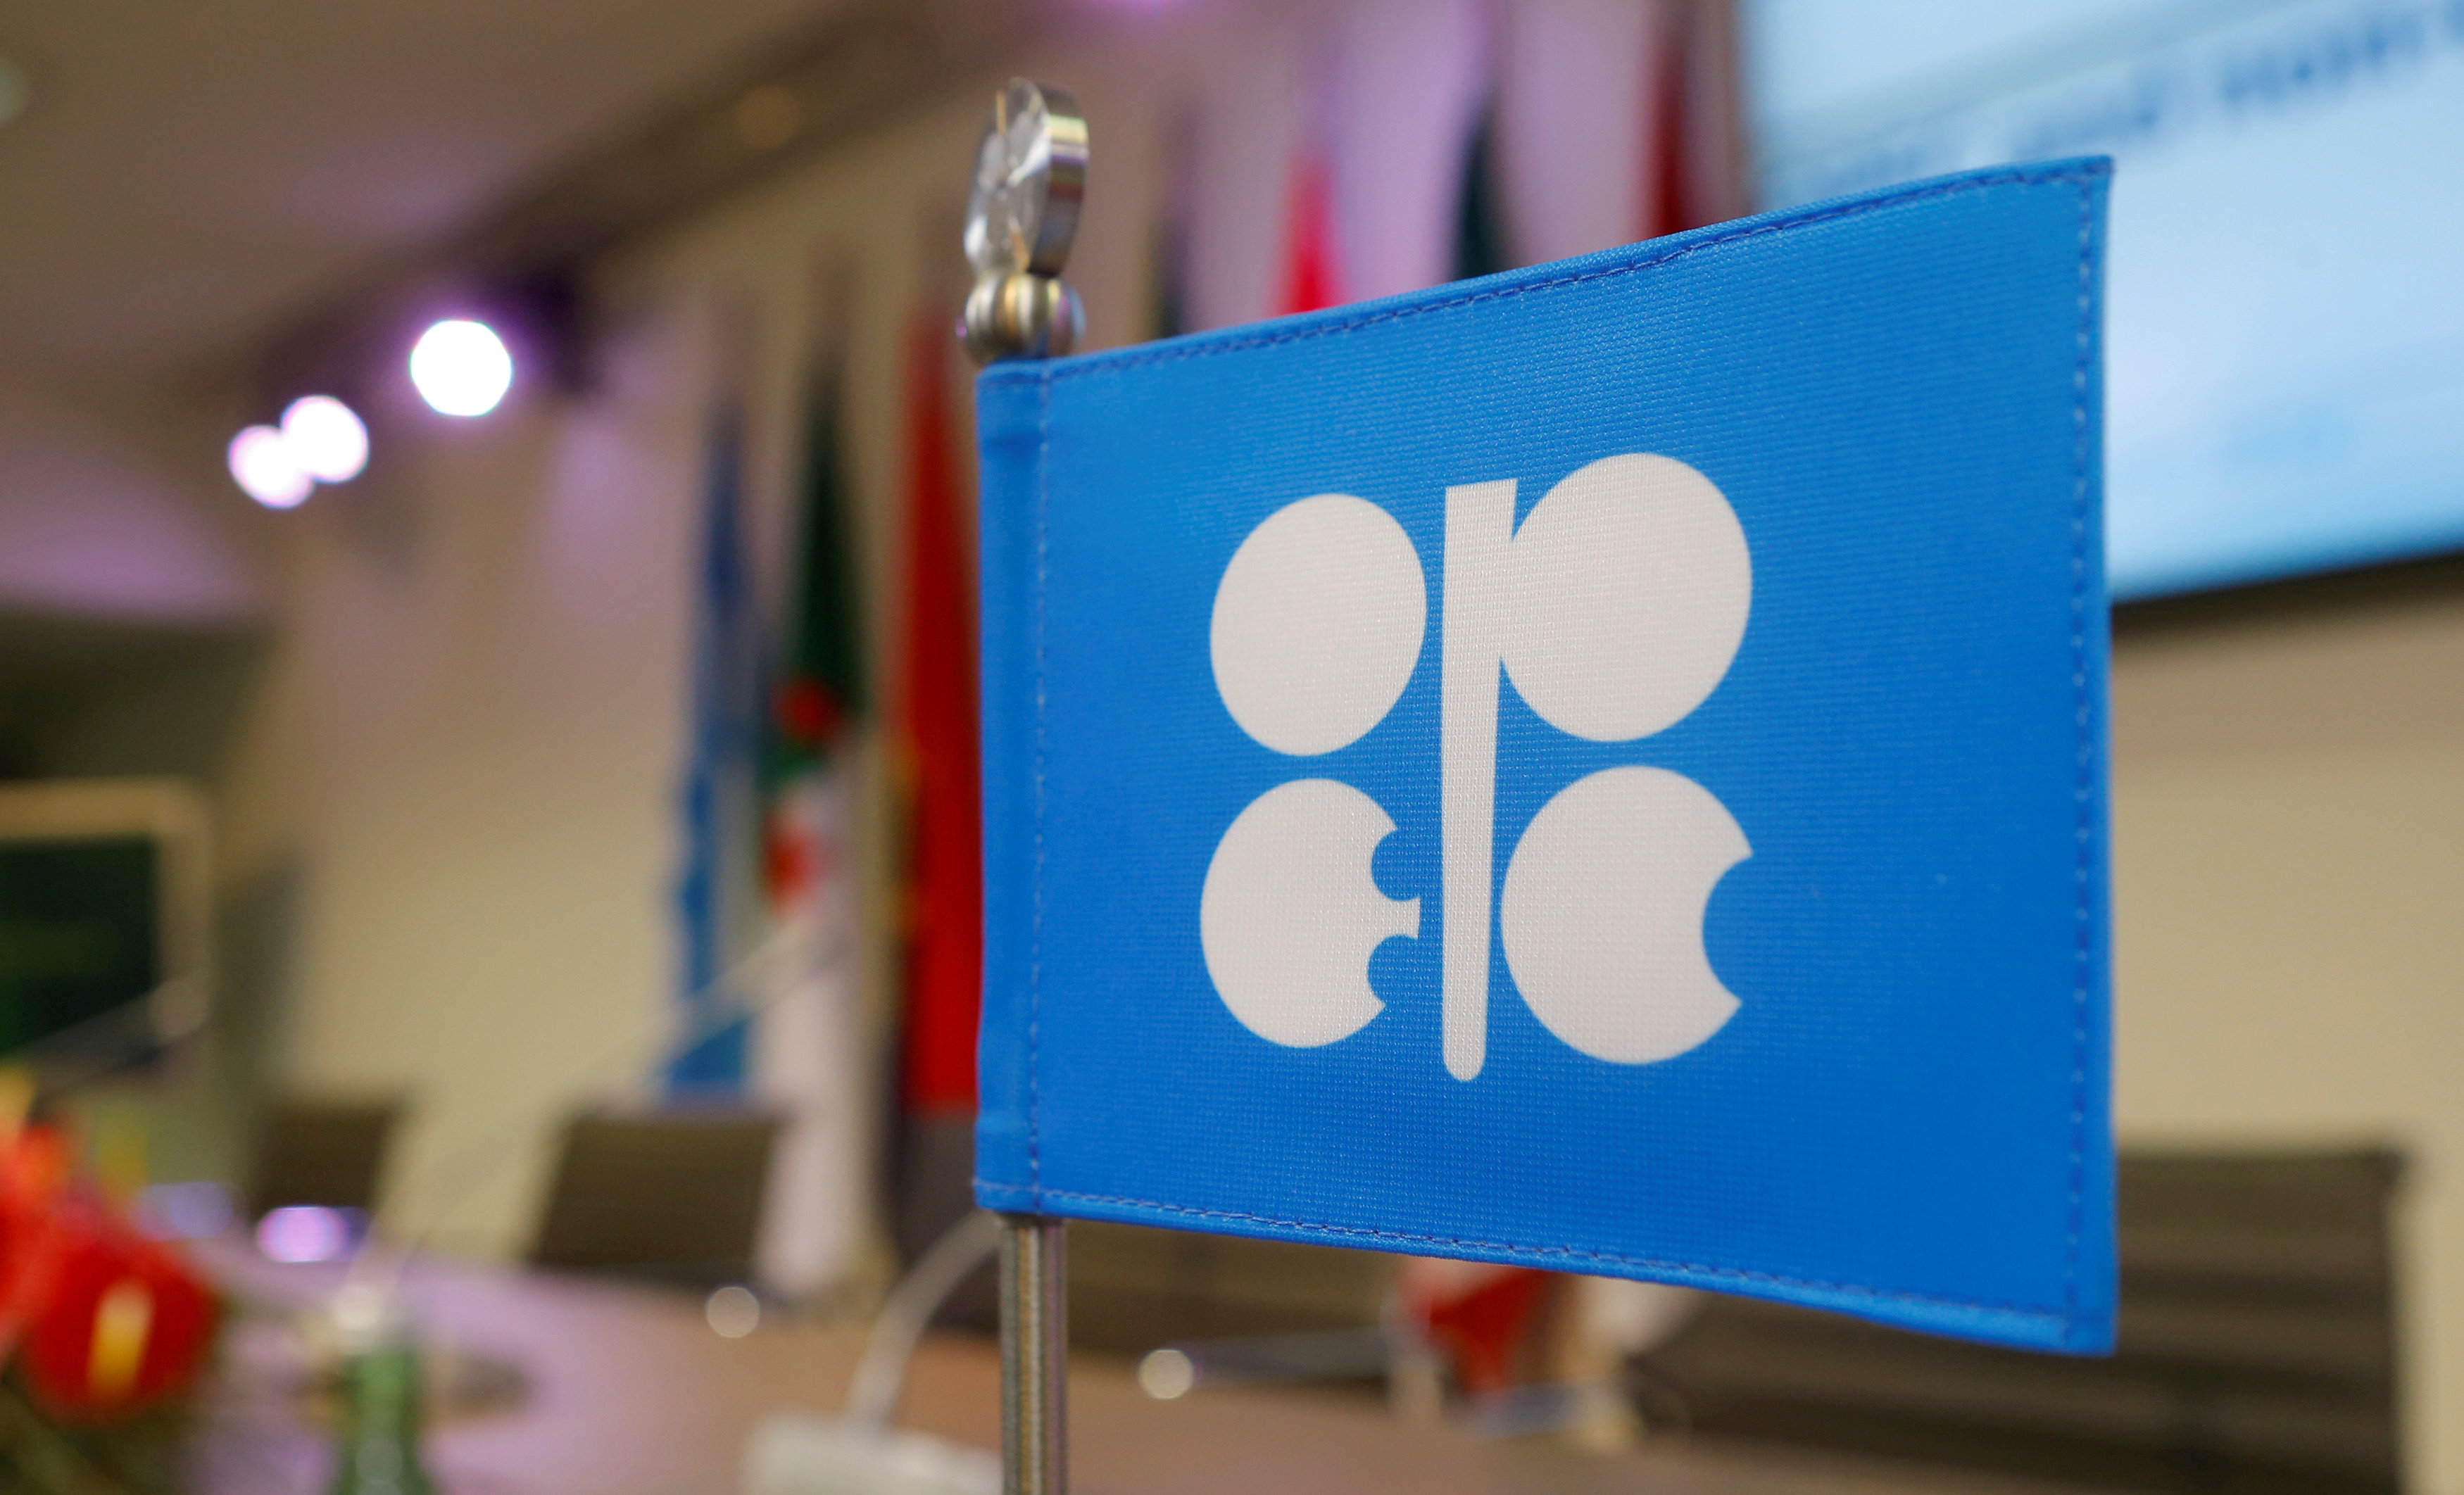 Opec oil supply set for sharp drop in August: PetroLogistics